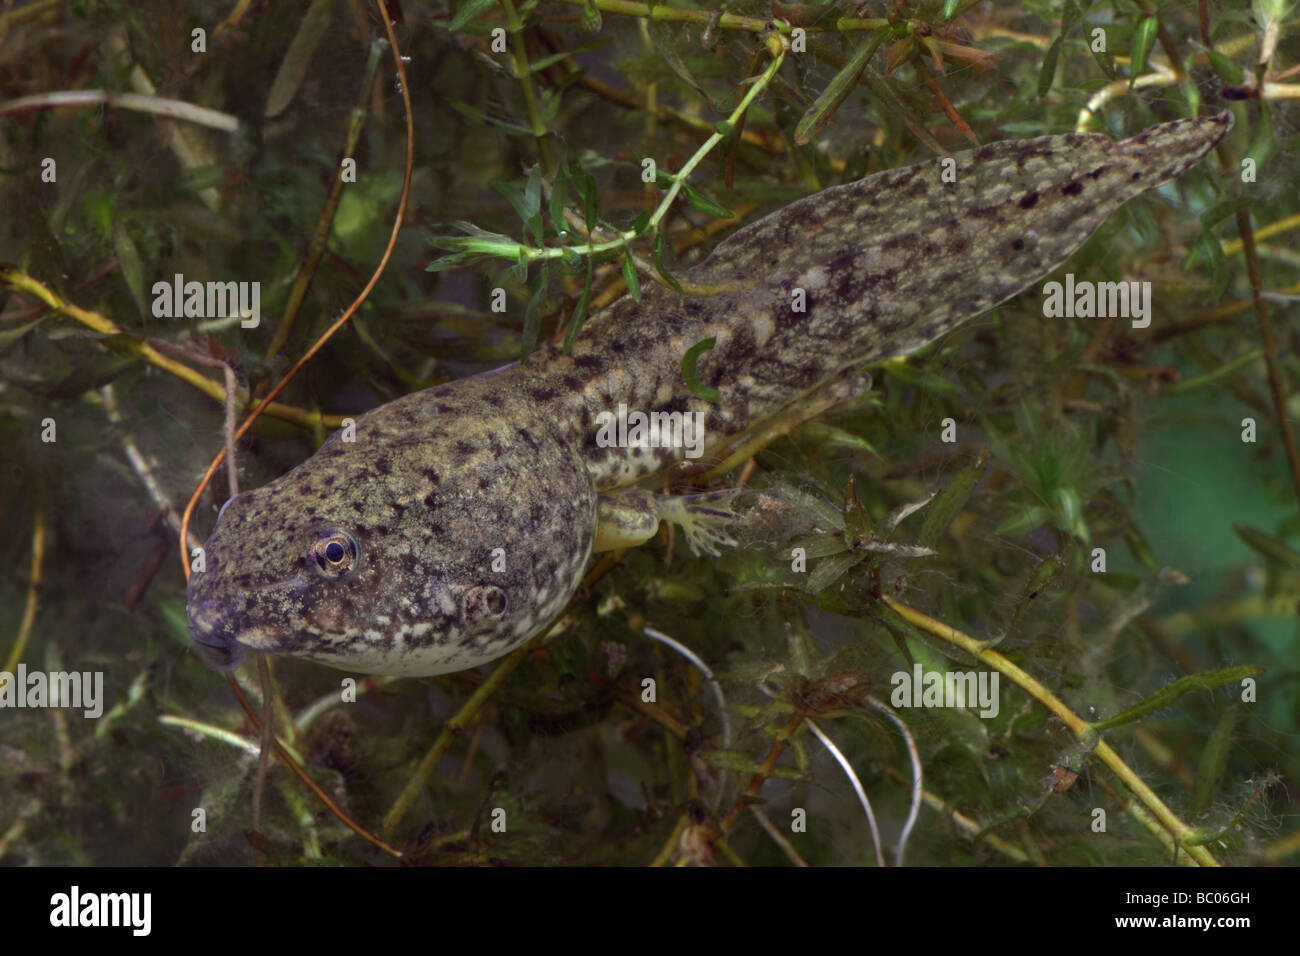 Green Frog Tadpole Rana Clamitans Intermediate Stage